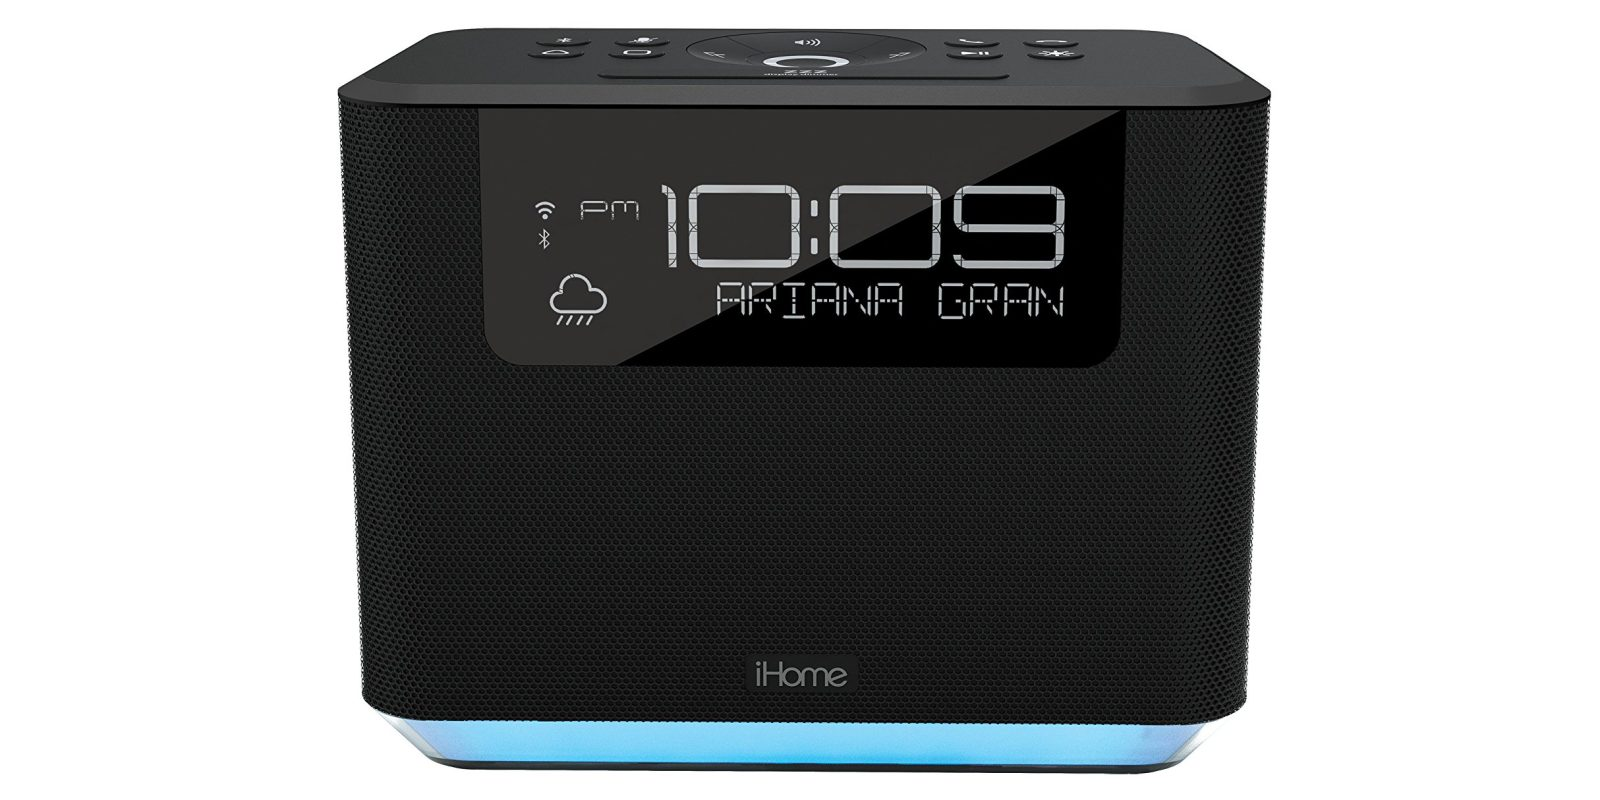 Alexa comes to iHome's latest alarm clock along with USB charging, more